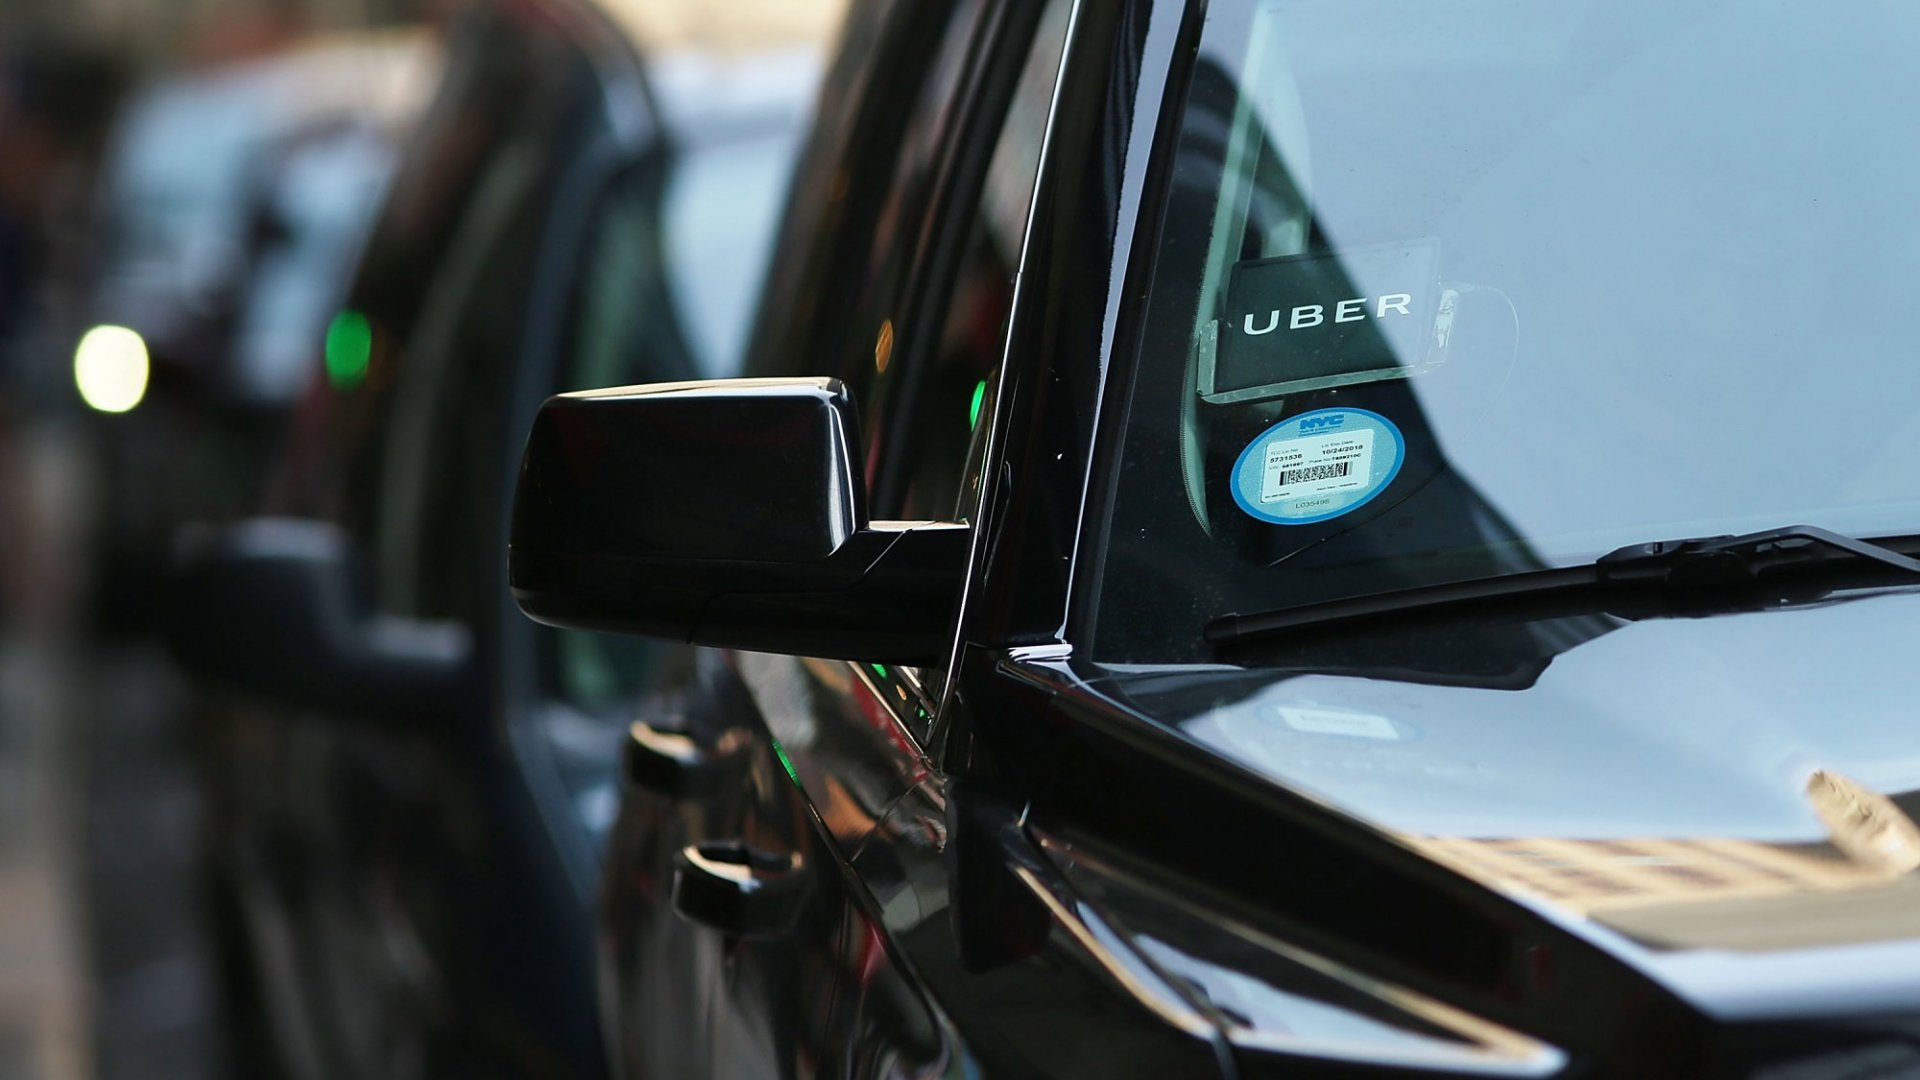 Uber Drivers Can NowMake an Extra $100 a Month By Selling You Snacks and Other Items During Your Ride